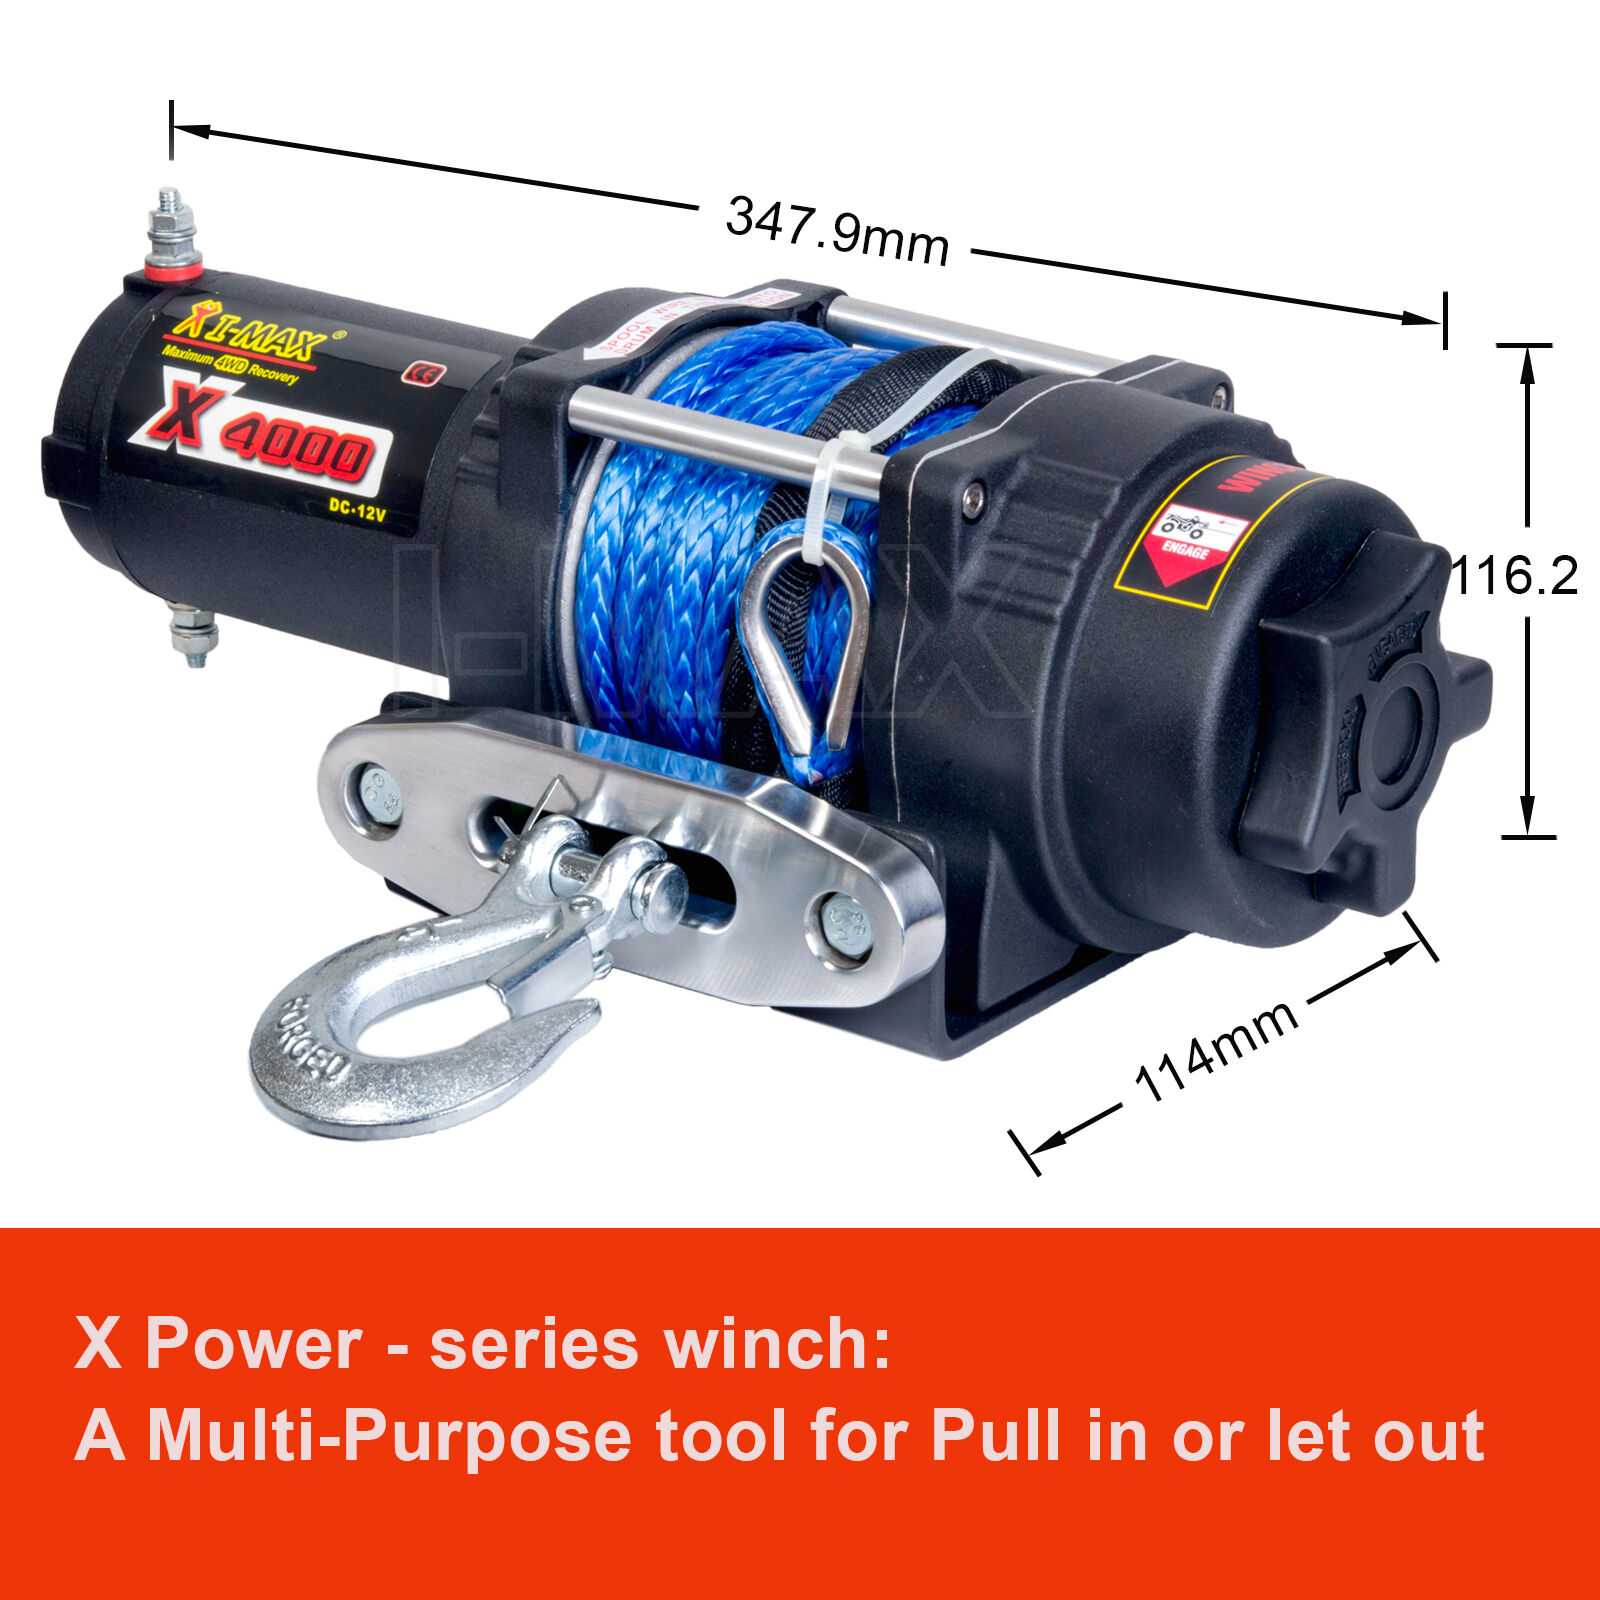 hight resolution of i max wireless 4000lbs 1814kg 12v electric winch rope boat atv 4wd imax winch wiring diagram 12v